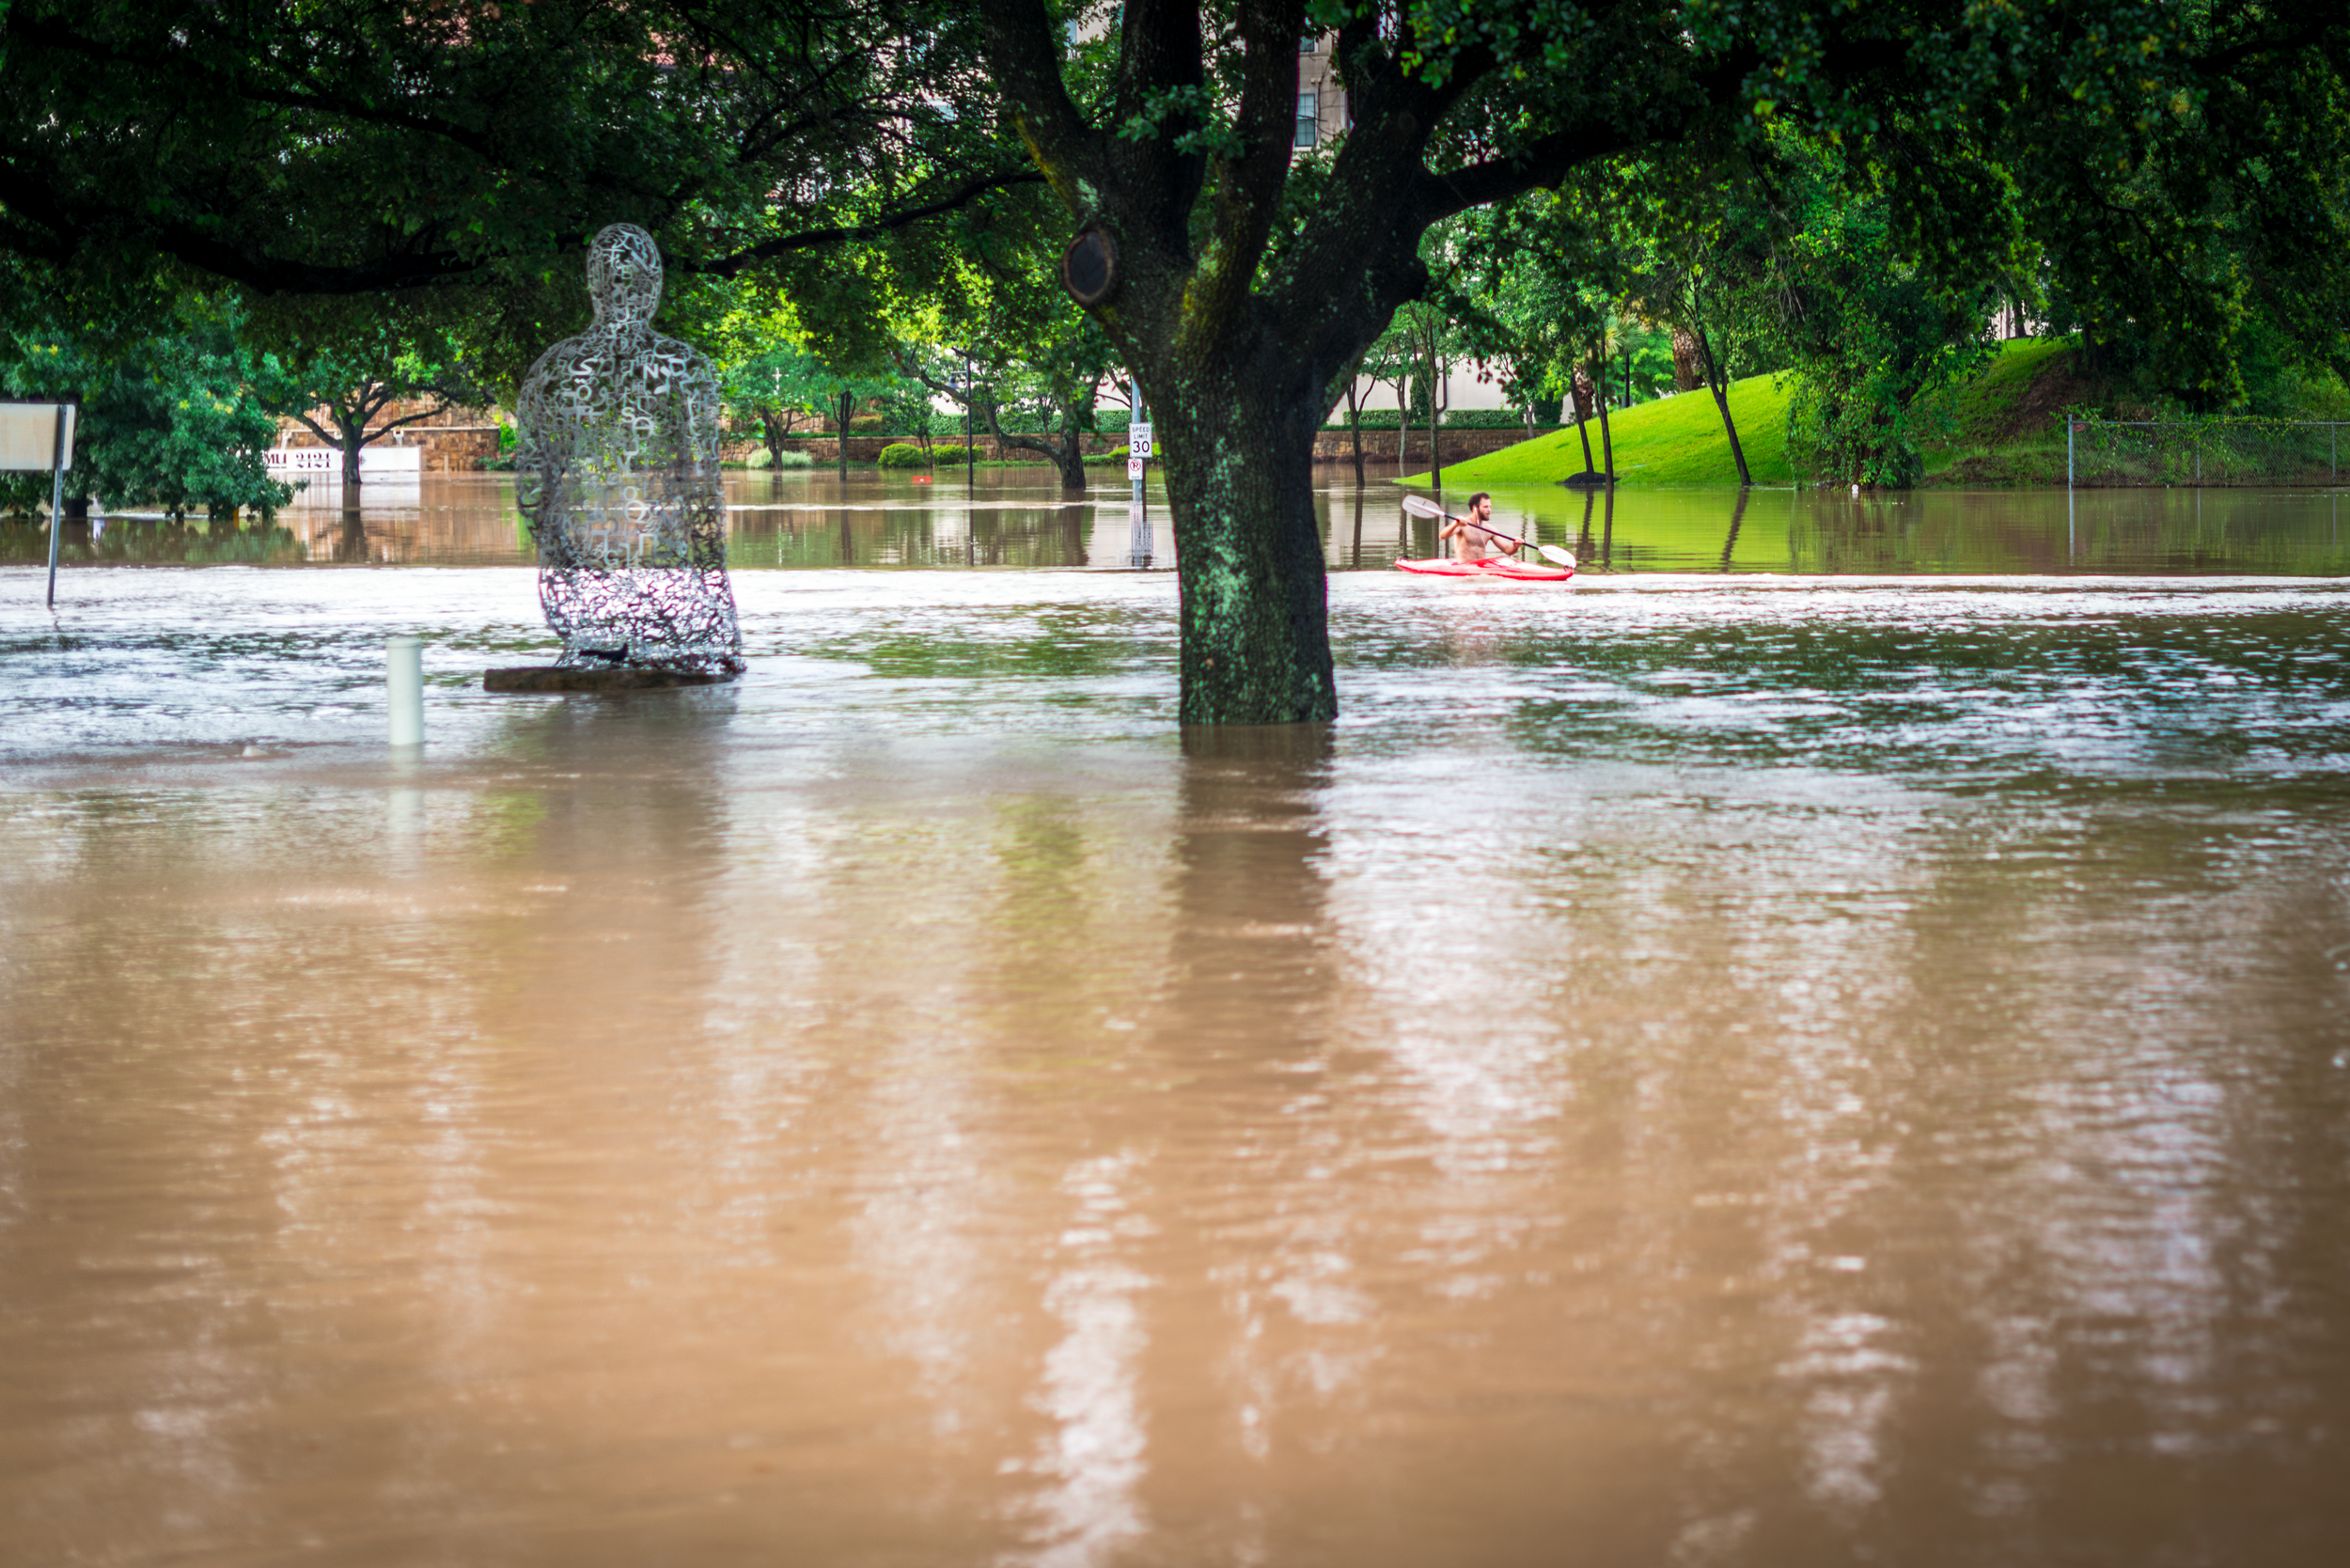 Here, the same kayaker is paddling on Allen Parkway, a street usually humming with cars, on May 26, 2015.